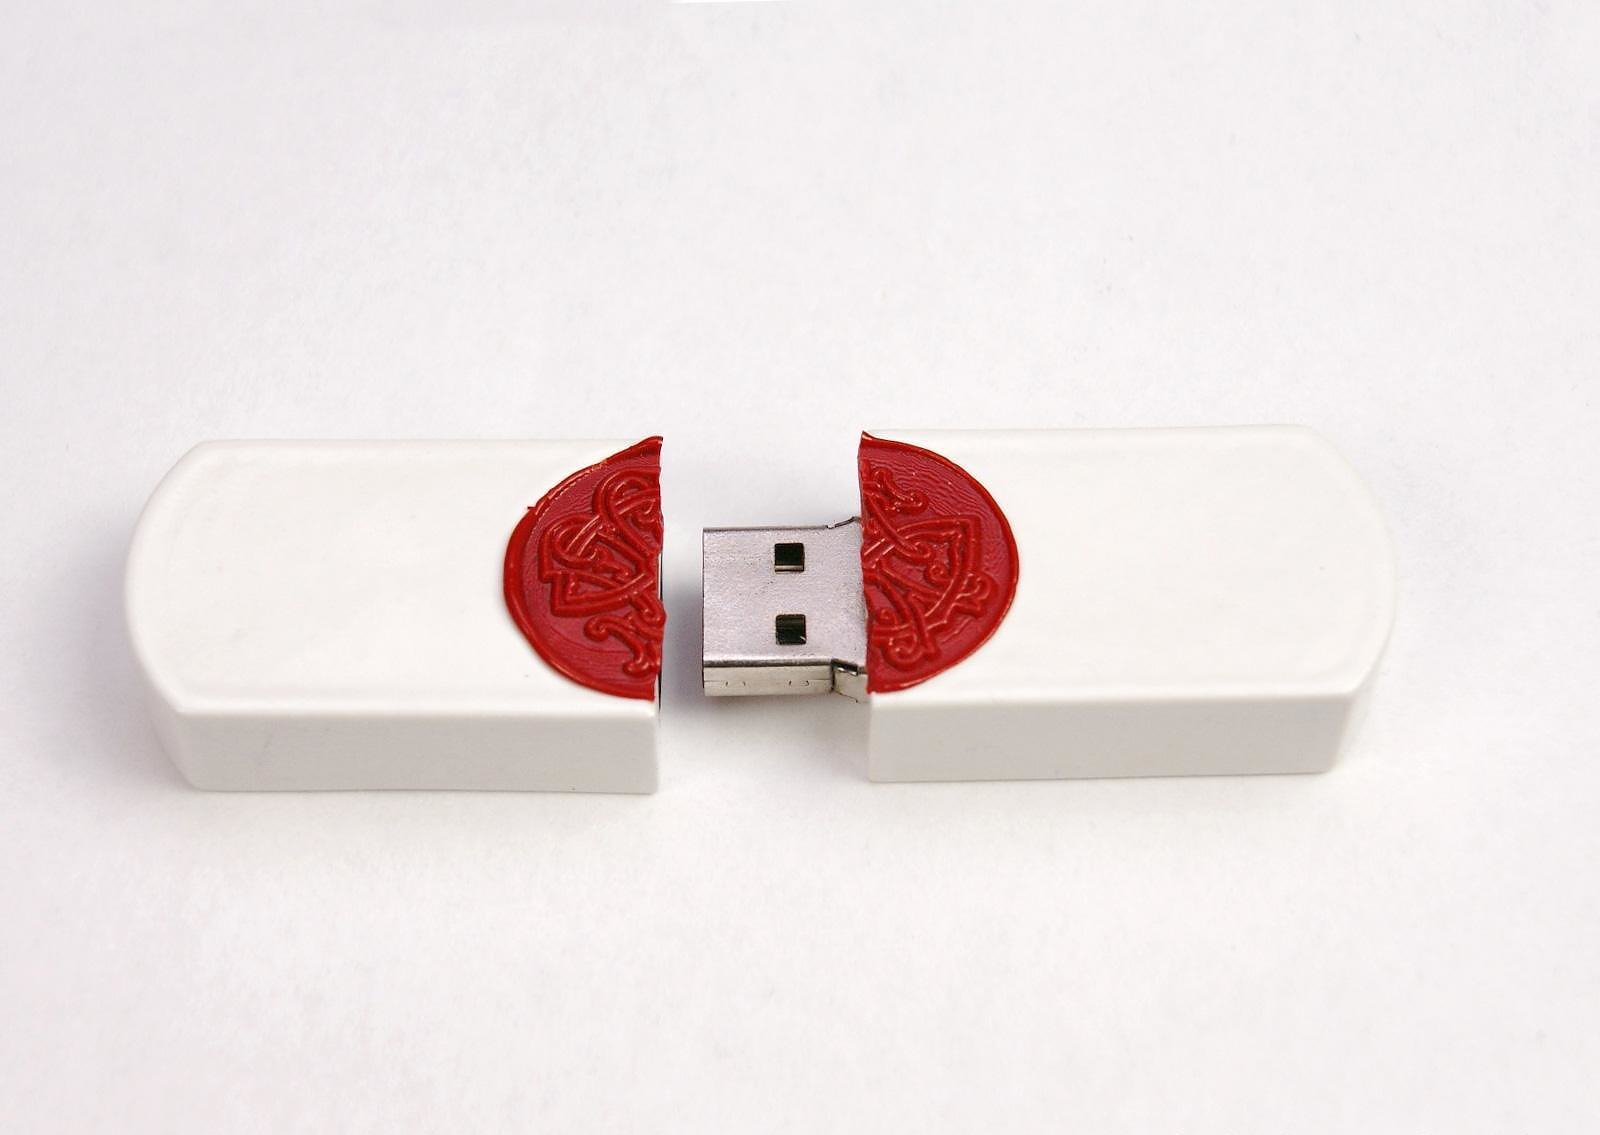 Top Secret USB Stick will store your Secrets in Style.